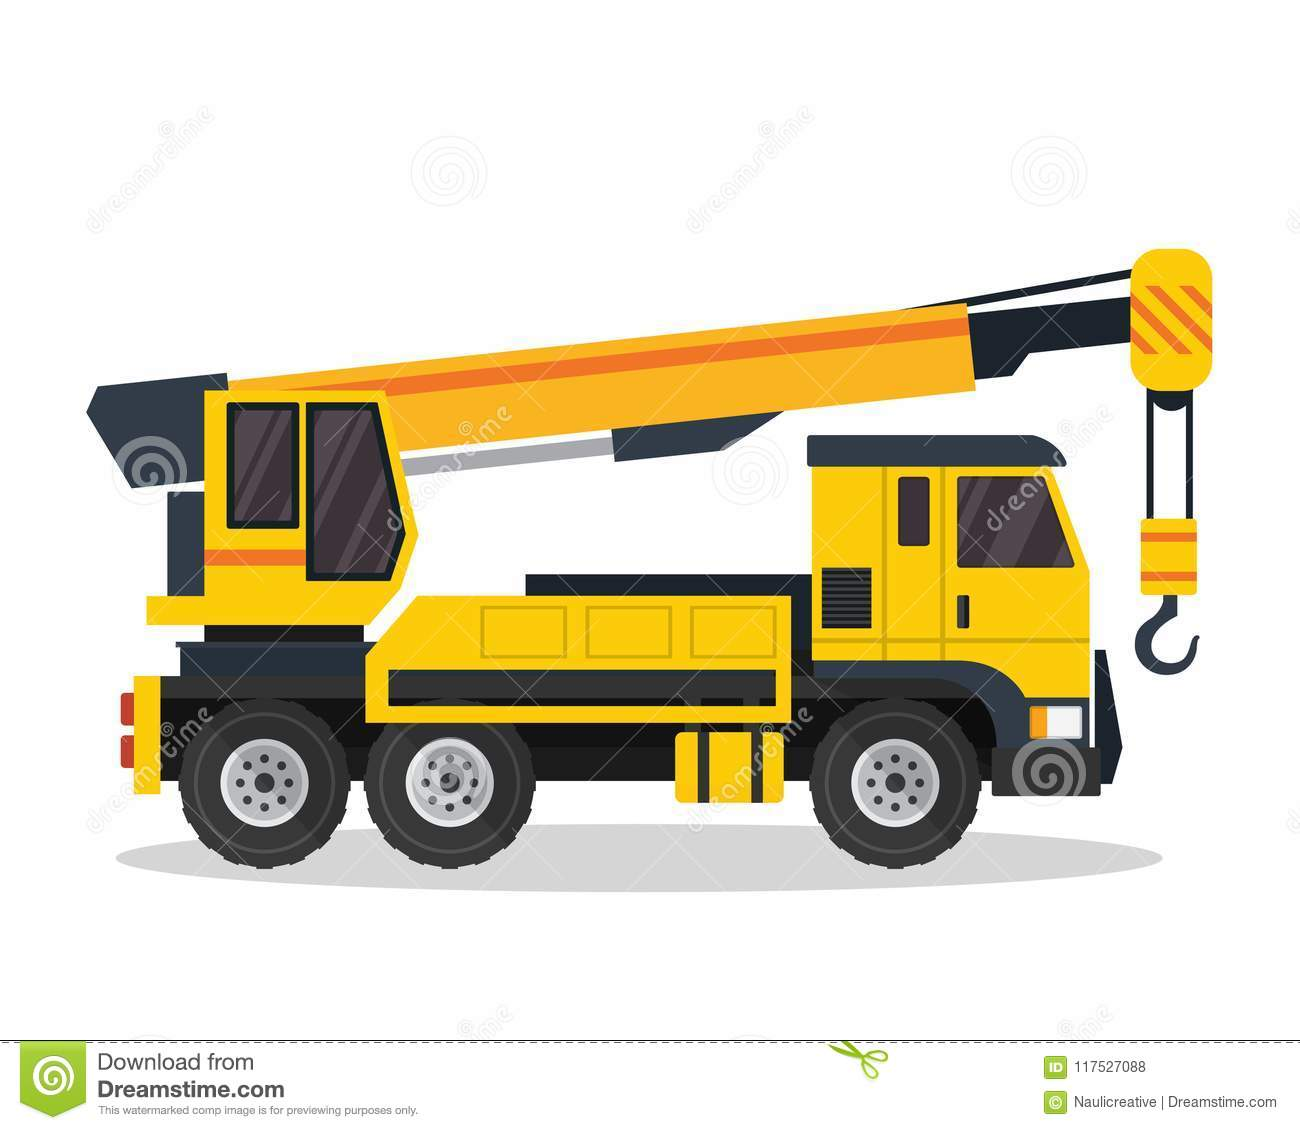 Modern Crane Truck Flat Construction Vehicle illustration